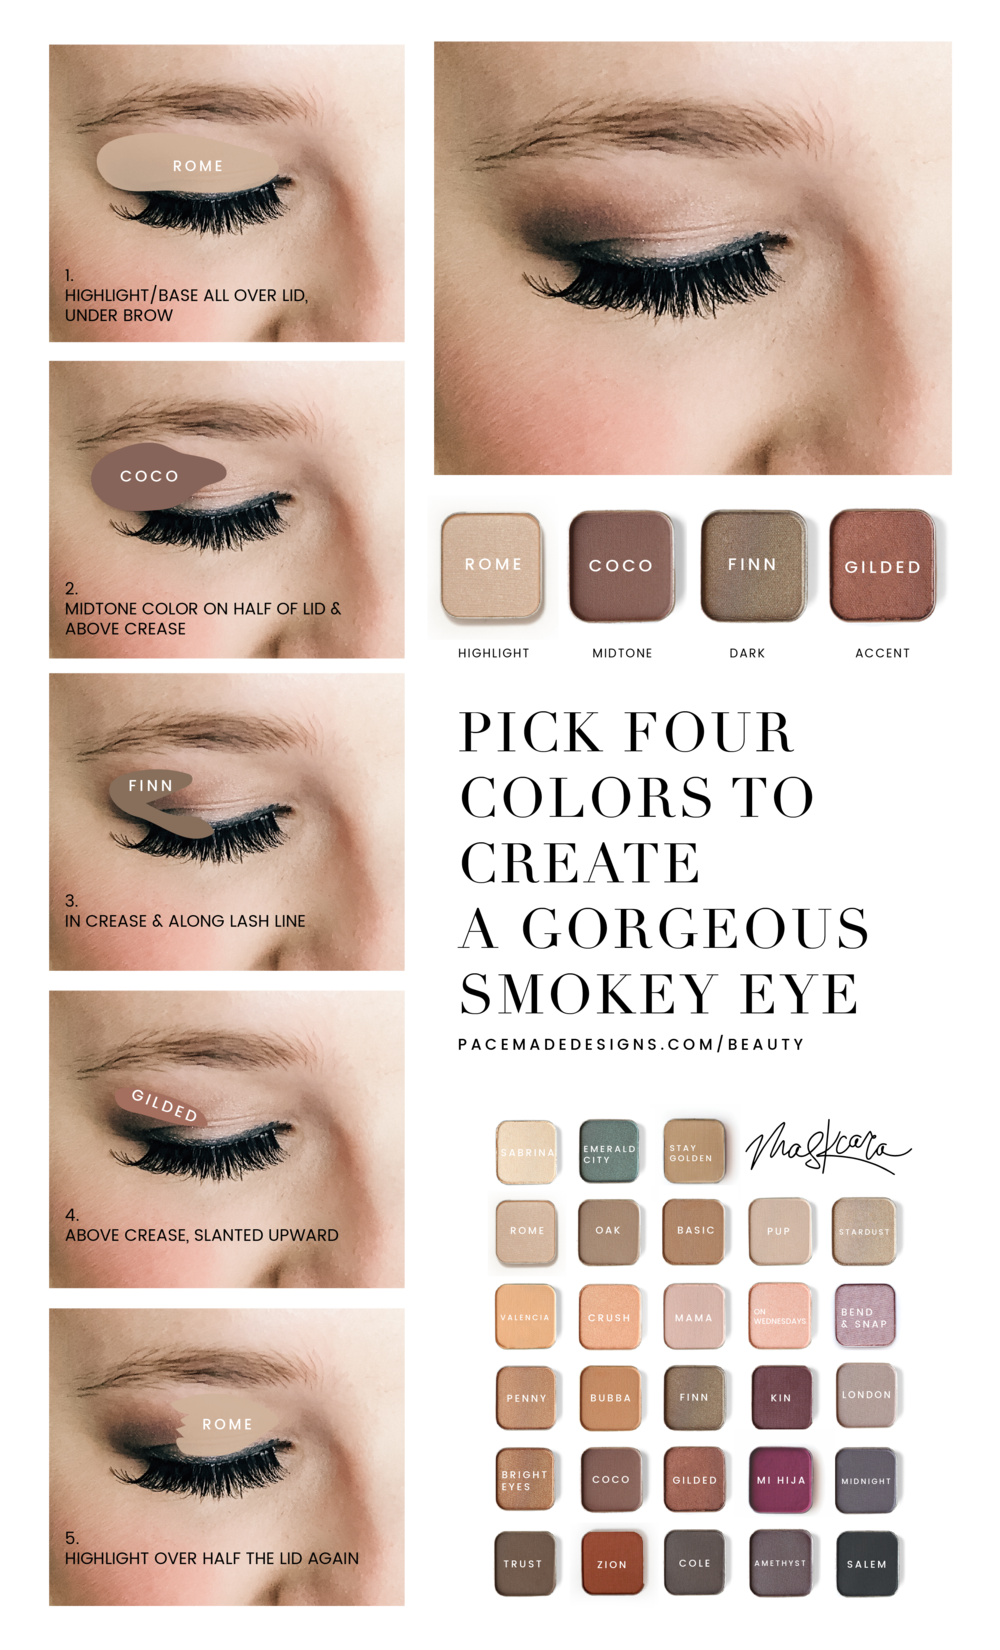 I'm not pro at Eyeshadow, but when I see a beautiful color palette… I definitely want to get it on my eye. My go to is this little arrangement.  Our shadows are super pigmented, if you want to fill in your brow with powder then grab one of the matte shadows to double serve.   To get started pick four colors.   A highlight or base, mid tone, dark and then an accent. You can choose as many colors as you want within your eye color column, or choose neutrals and then choose an accent color from your eye color column to bring out your eye color.  So if I was going to choose neutrals + accent, I would choose Sabrina, bright eyes, trust and then gilded to bring out the green. You see, all of my colors don't have to come from my color column, those just give you lots of choices to emphasize your eye color!